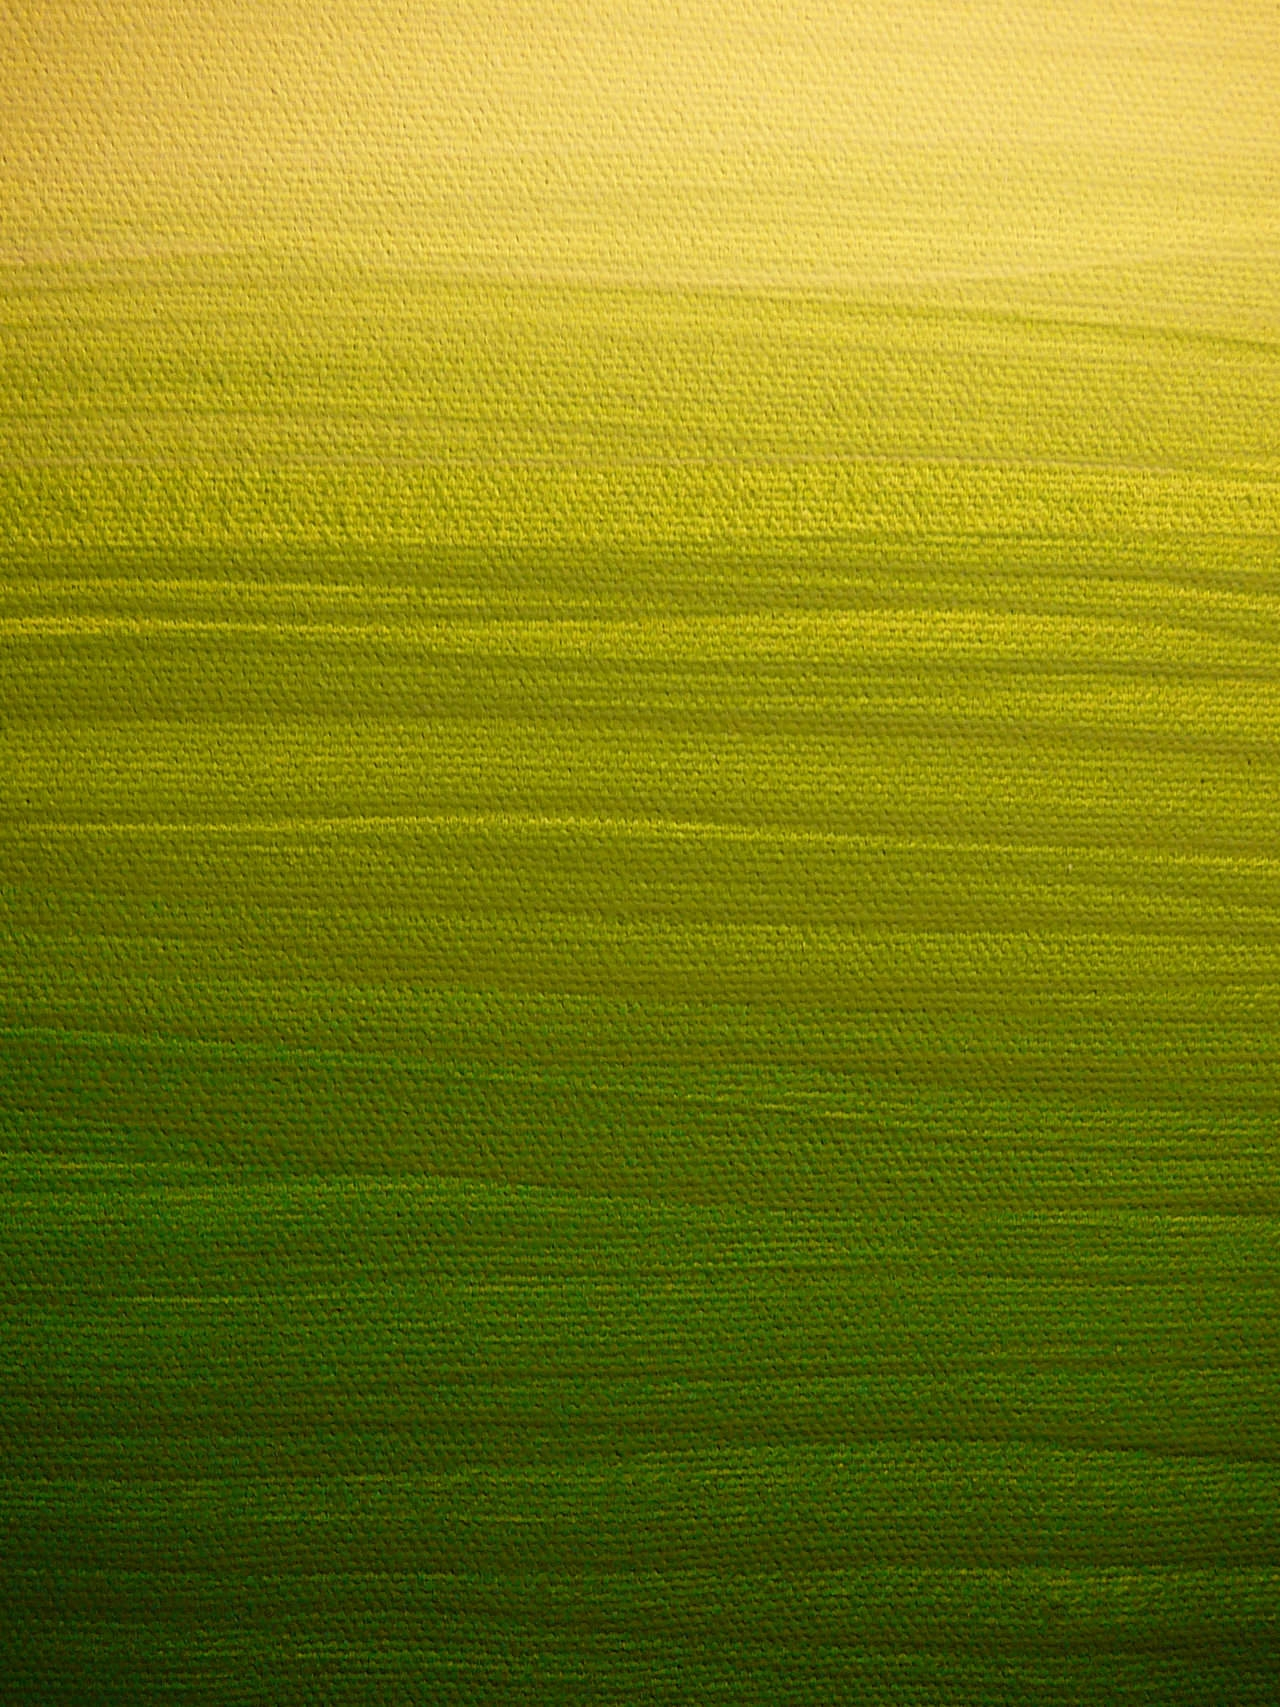 Green Paint Texture Background